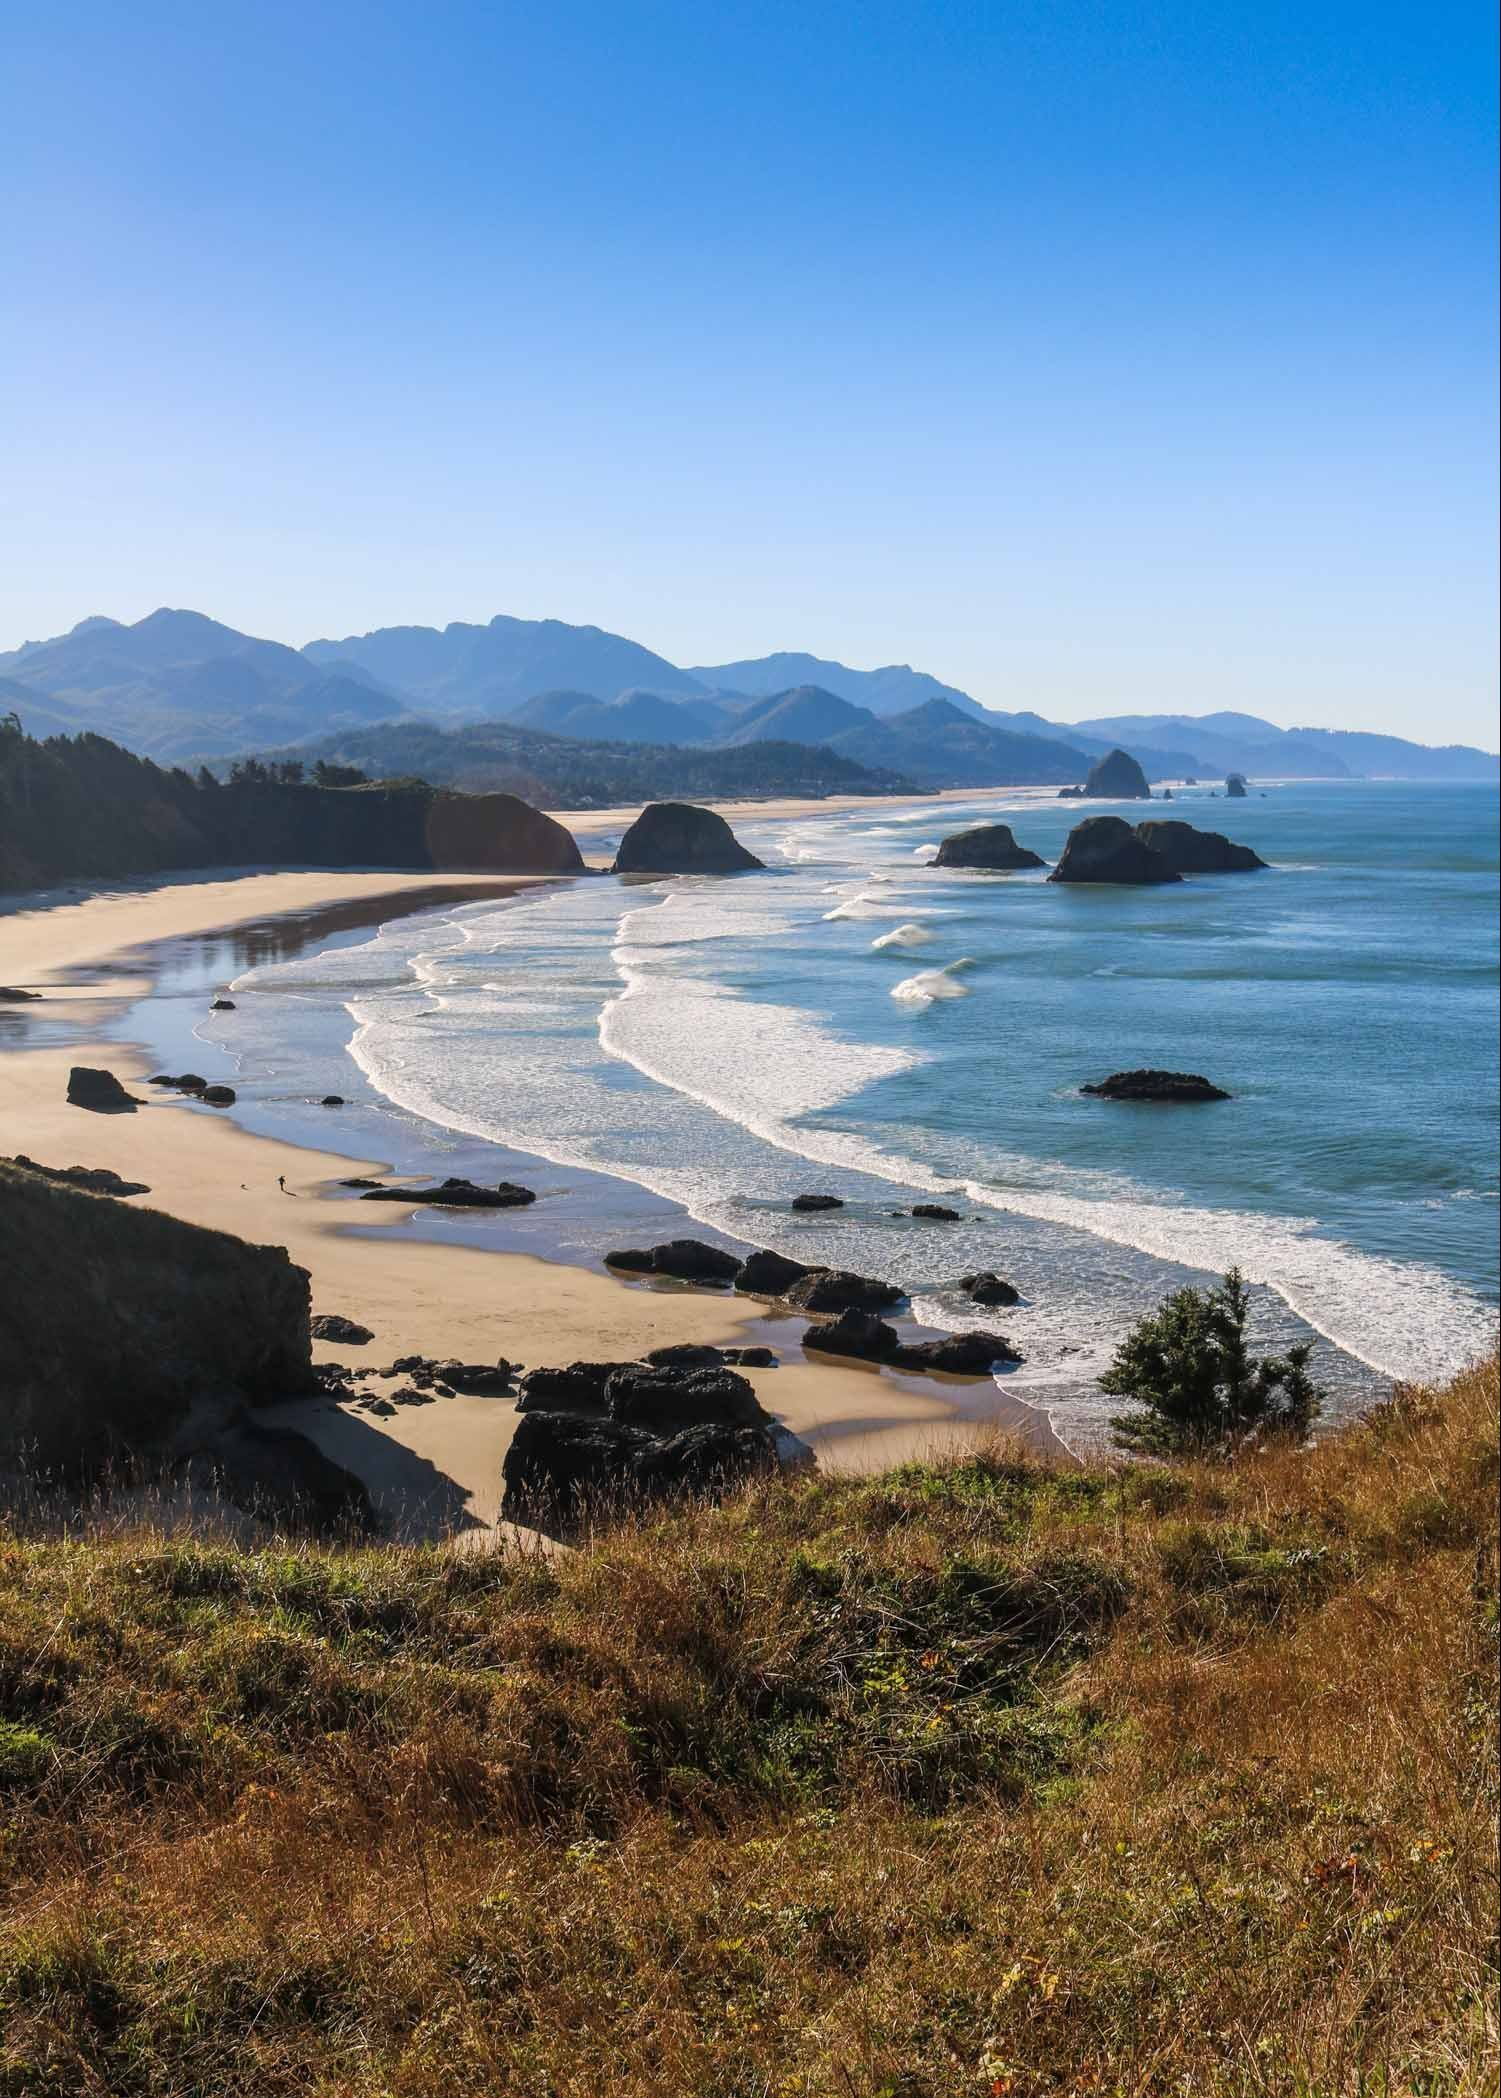 Best Day Trips From Portland For Nature Lovers | Travel. Experience. Live.